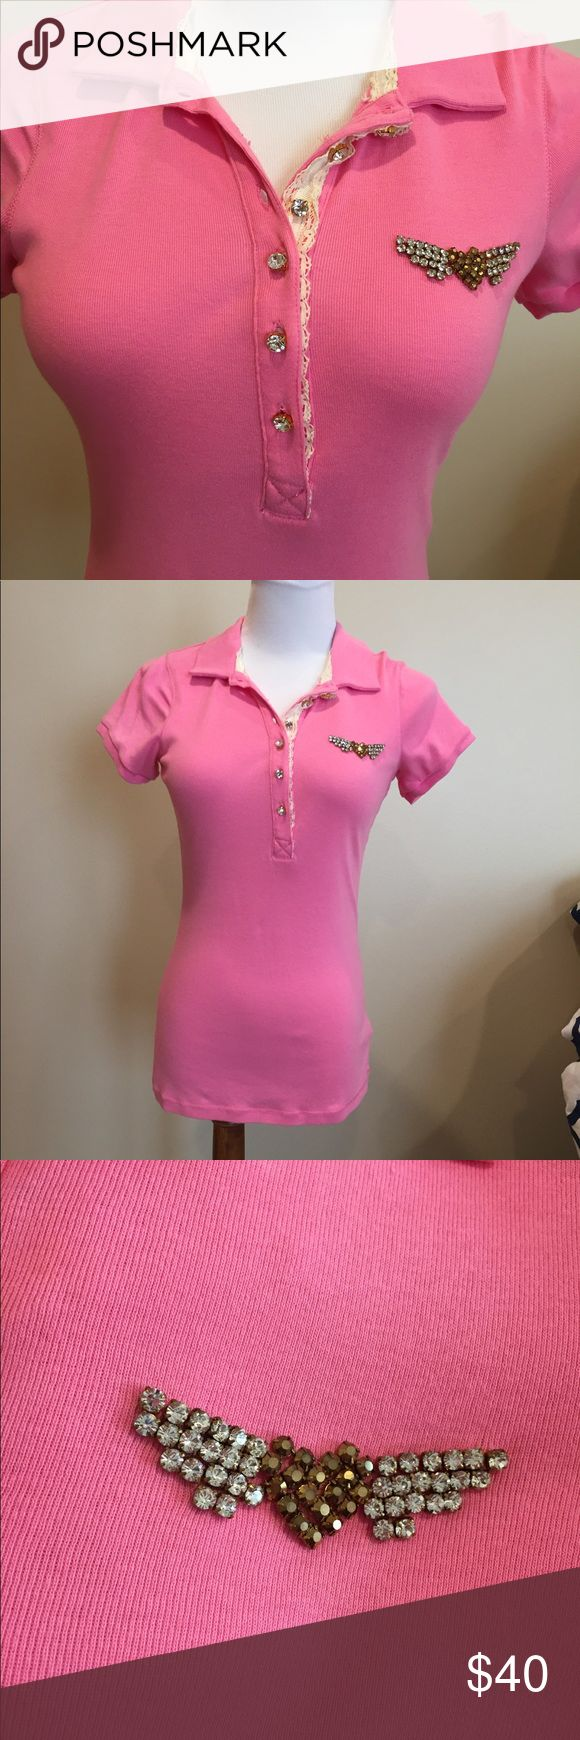 Twisted Heart Embellished Pink Polo Shirt NWOT Twisted Heart pink polo shirt with Rhinestone Heart and wings logo on chest. Lace trim and Rhinestone buttons. New, never worn. Size Small on a Size 4 mannequin as shown. Not your average, boring Polo! Just listed. TWISTED HEART Tops Tees - Short Sleeve